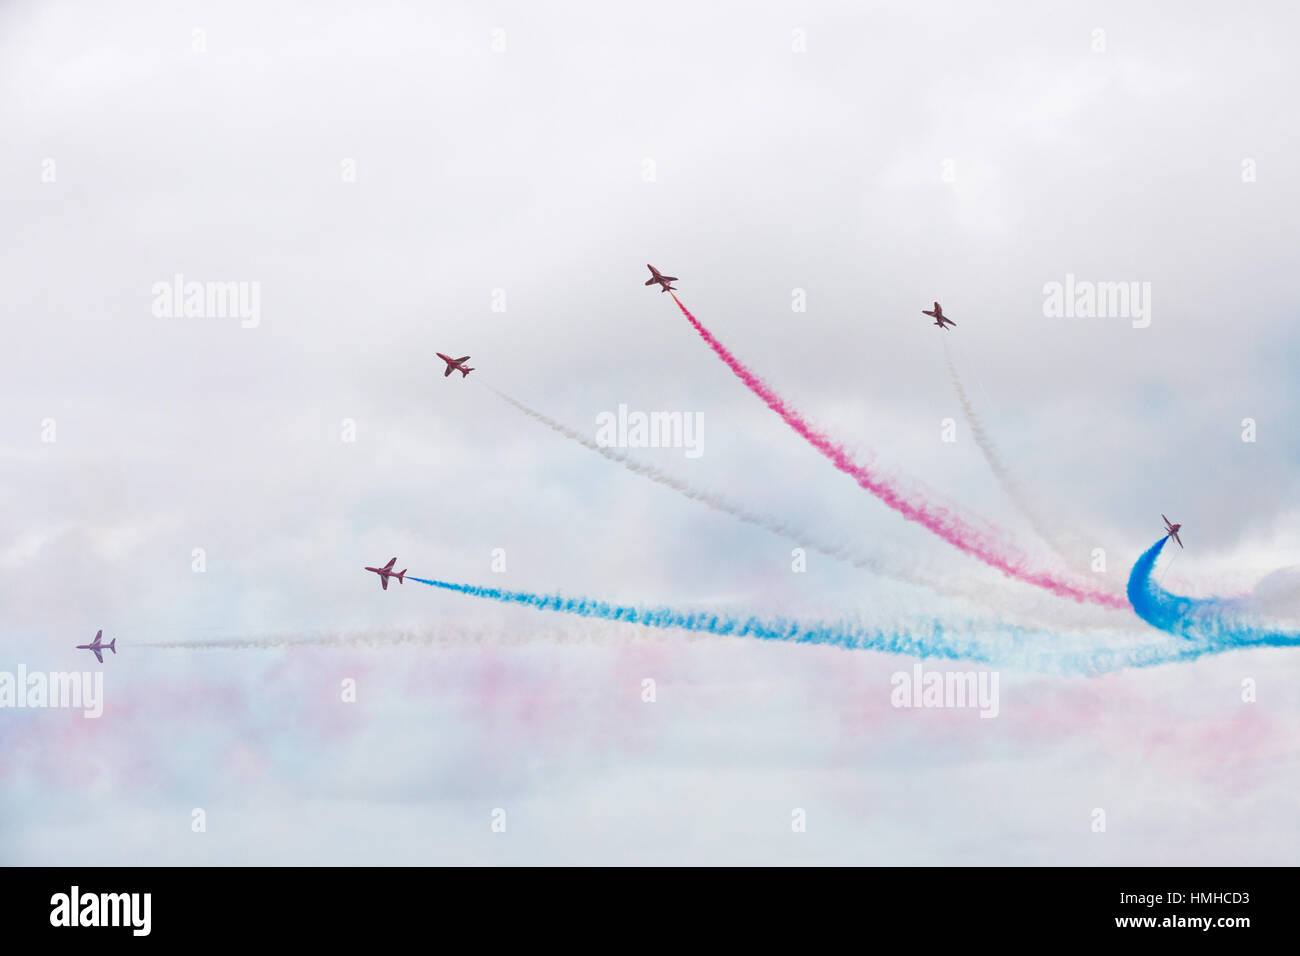 Bournemouth, Dorset, ENGLAND - August 21, 2016: Bournemouth Air Festival 2016 - Six Hawk T Red Arrow jets perform - Stock Image